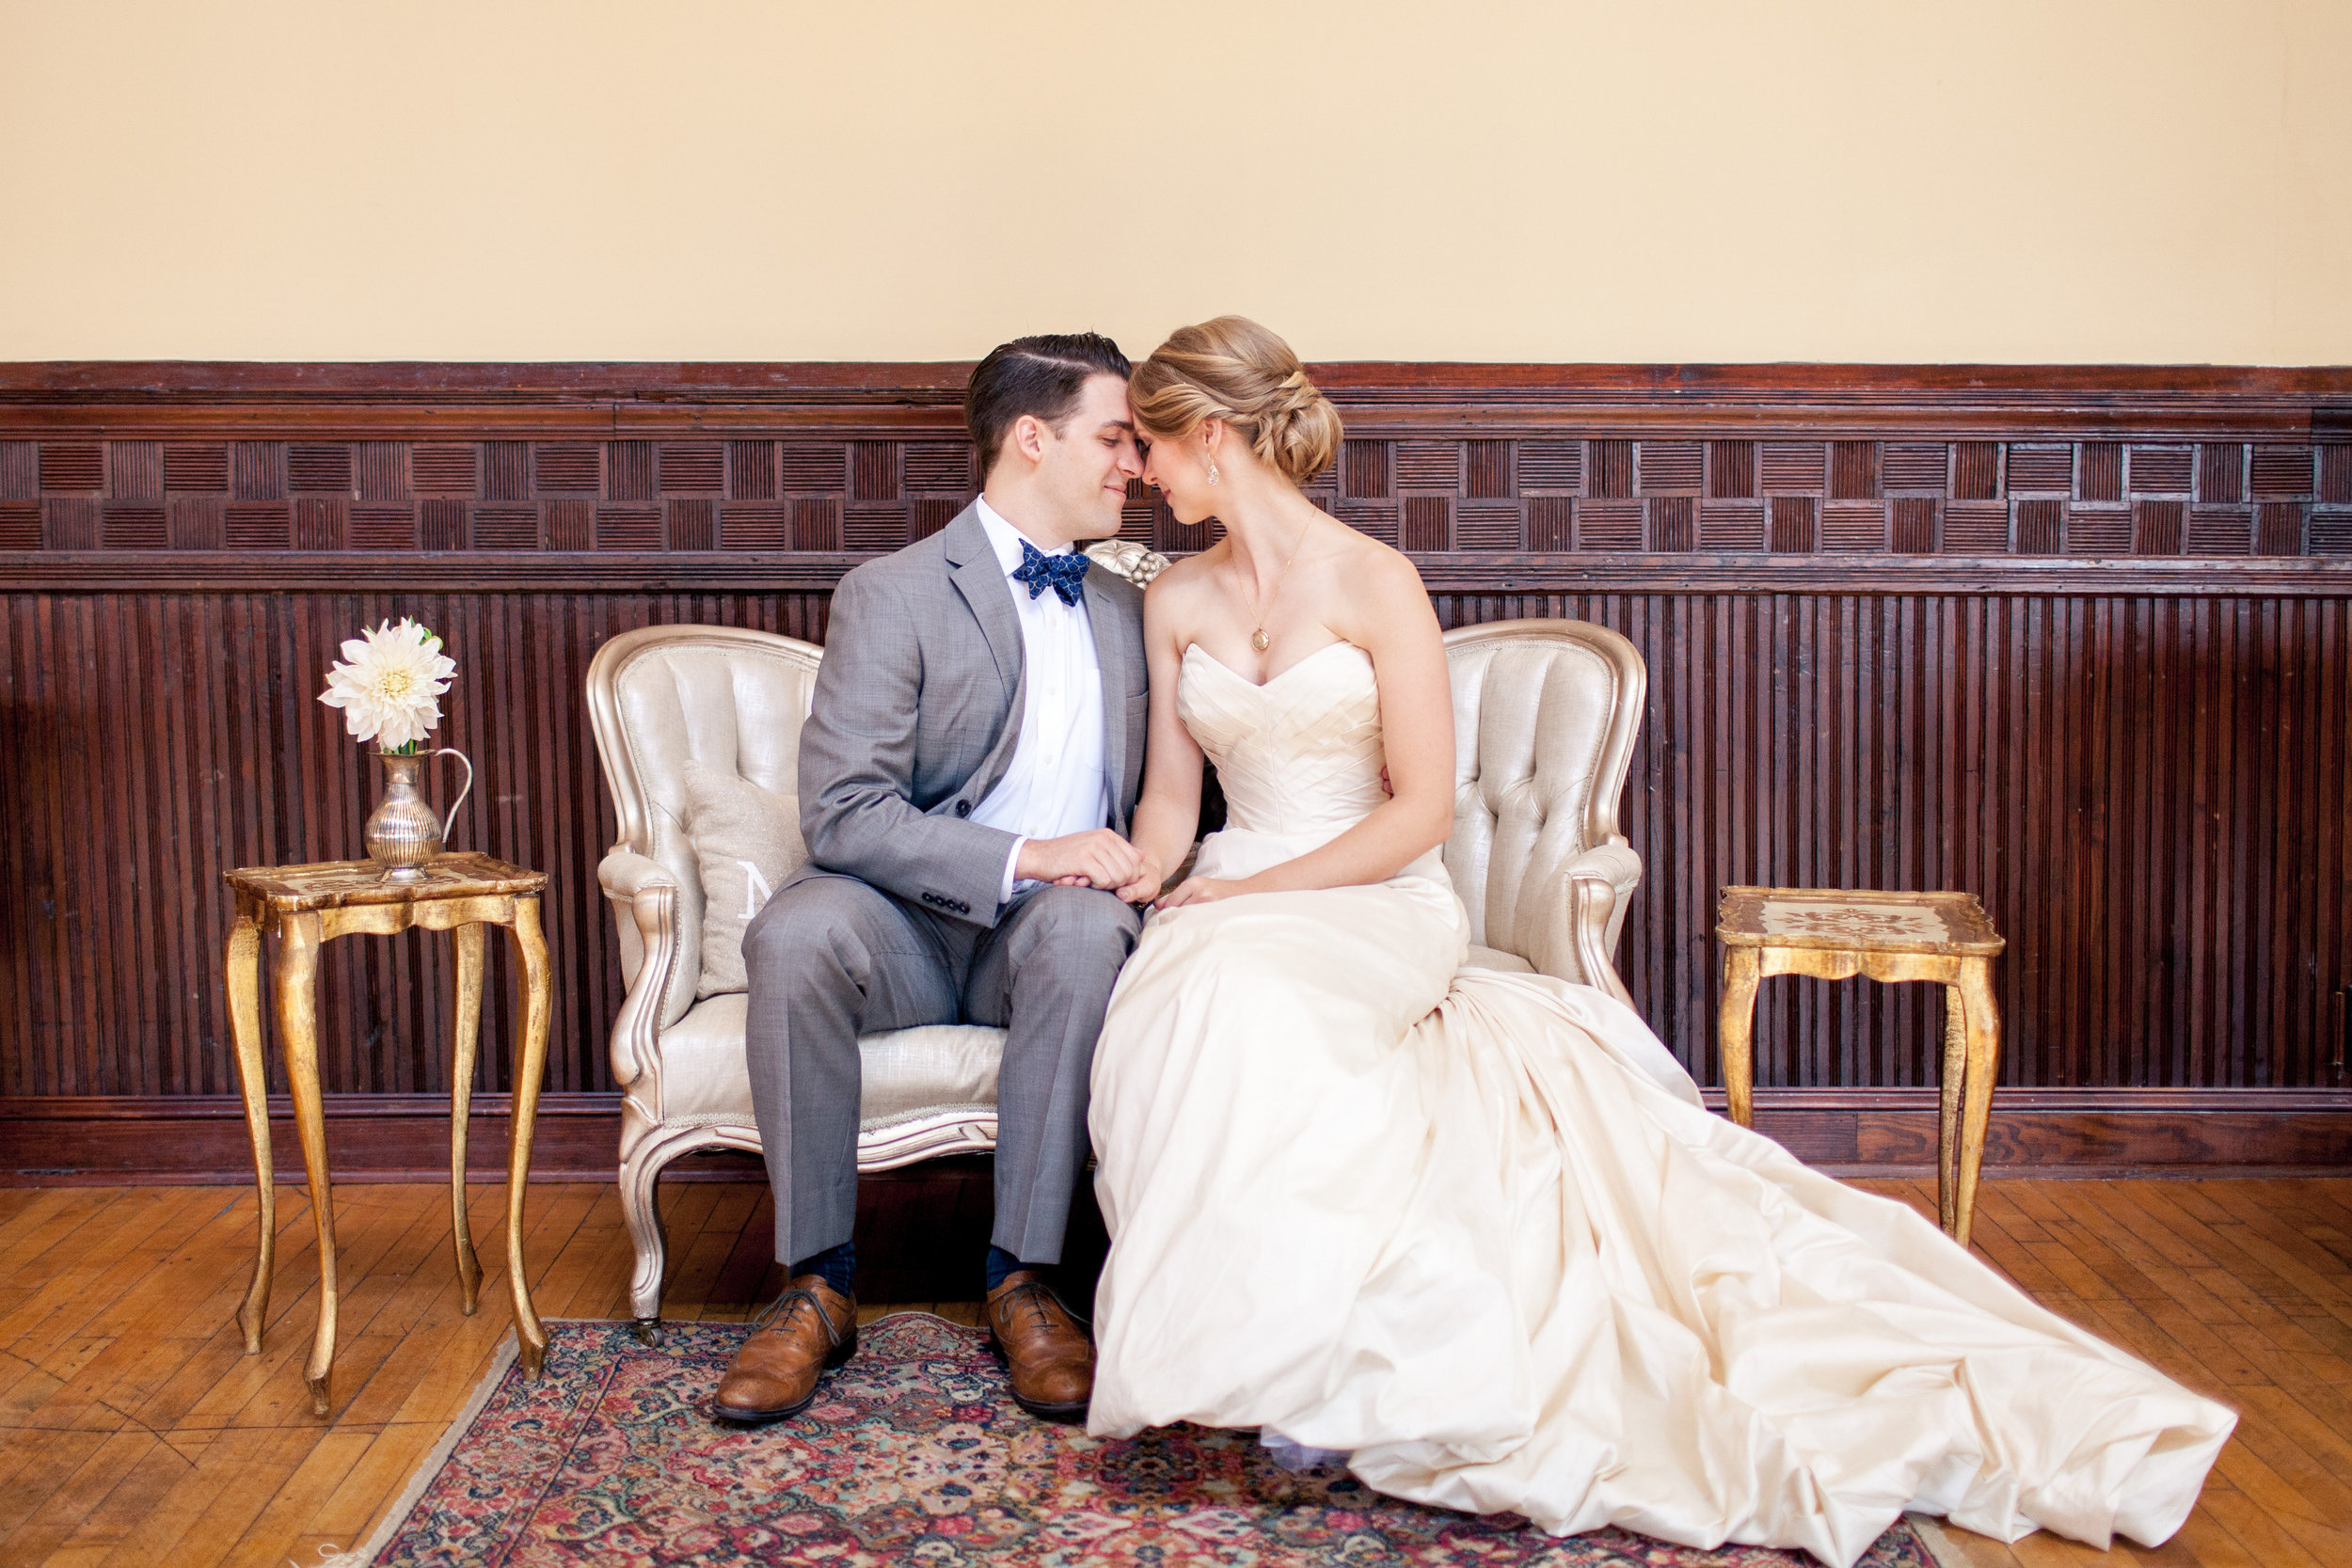 Instead of a sweetheart table, the bride and groom had their own a sweetheart lounge area situated right next to the dance floor. A sweet spot for them to rest, snuggle, sip, and people-watch.Their nook used our  Lady Sybil love seat, Luciano side tables (gold florentine), Jess  area rug, and some accent pillows.